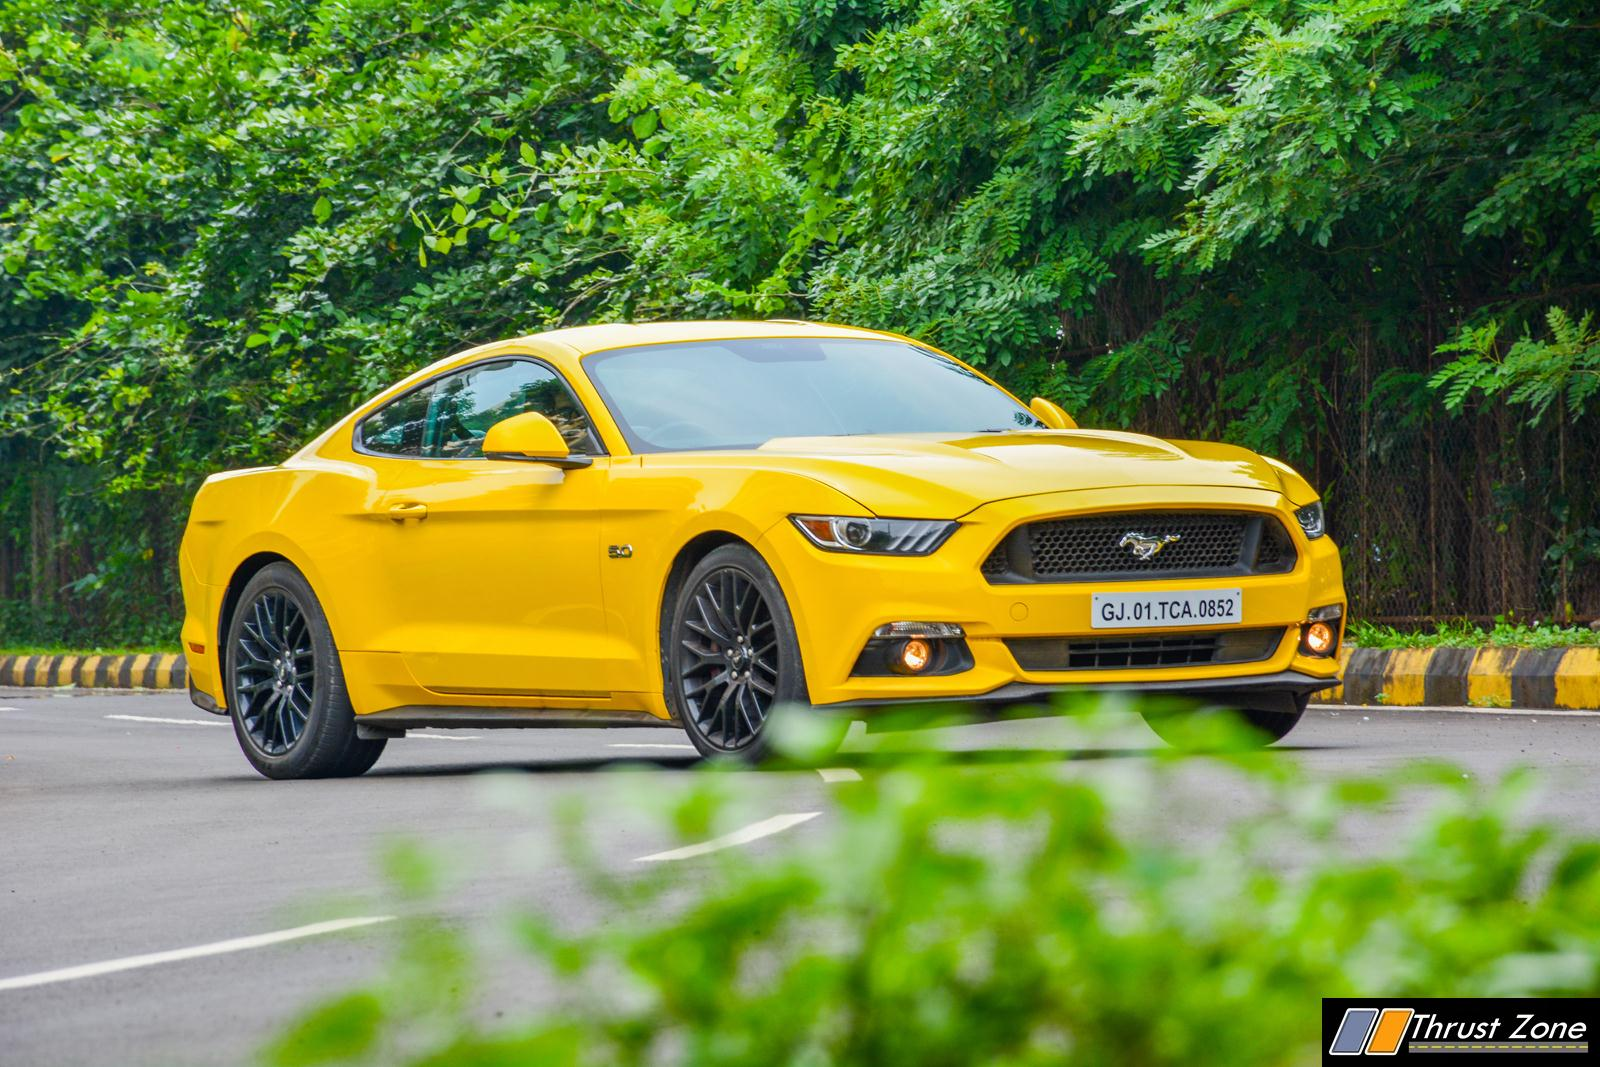 https://www.thrustzone.com/wp-content/uploads/2018/09/Ford-Mustang-India-V8-Review-19.jpg